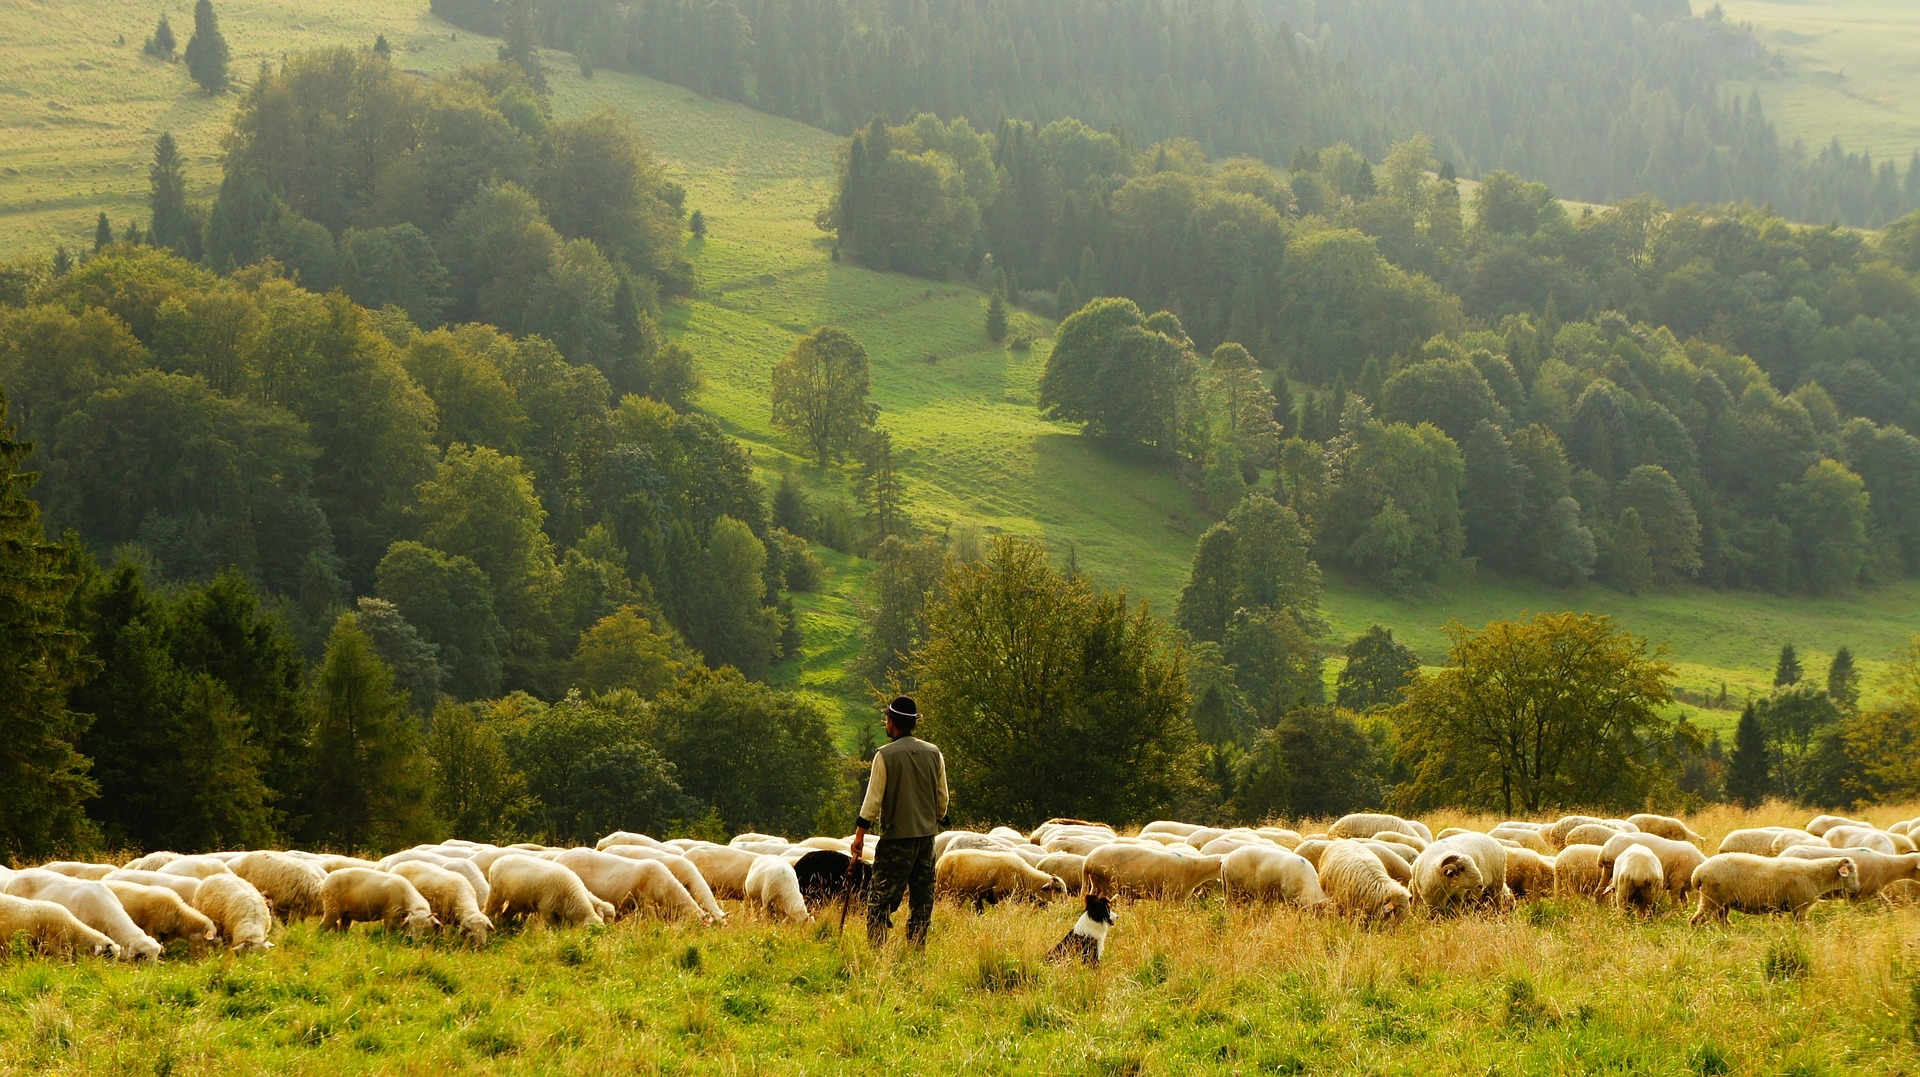 Transformation Examples In The Bible Shepherd